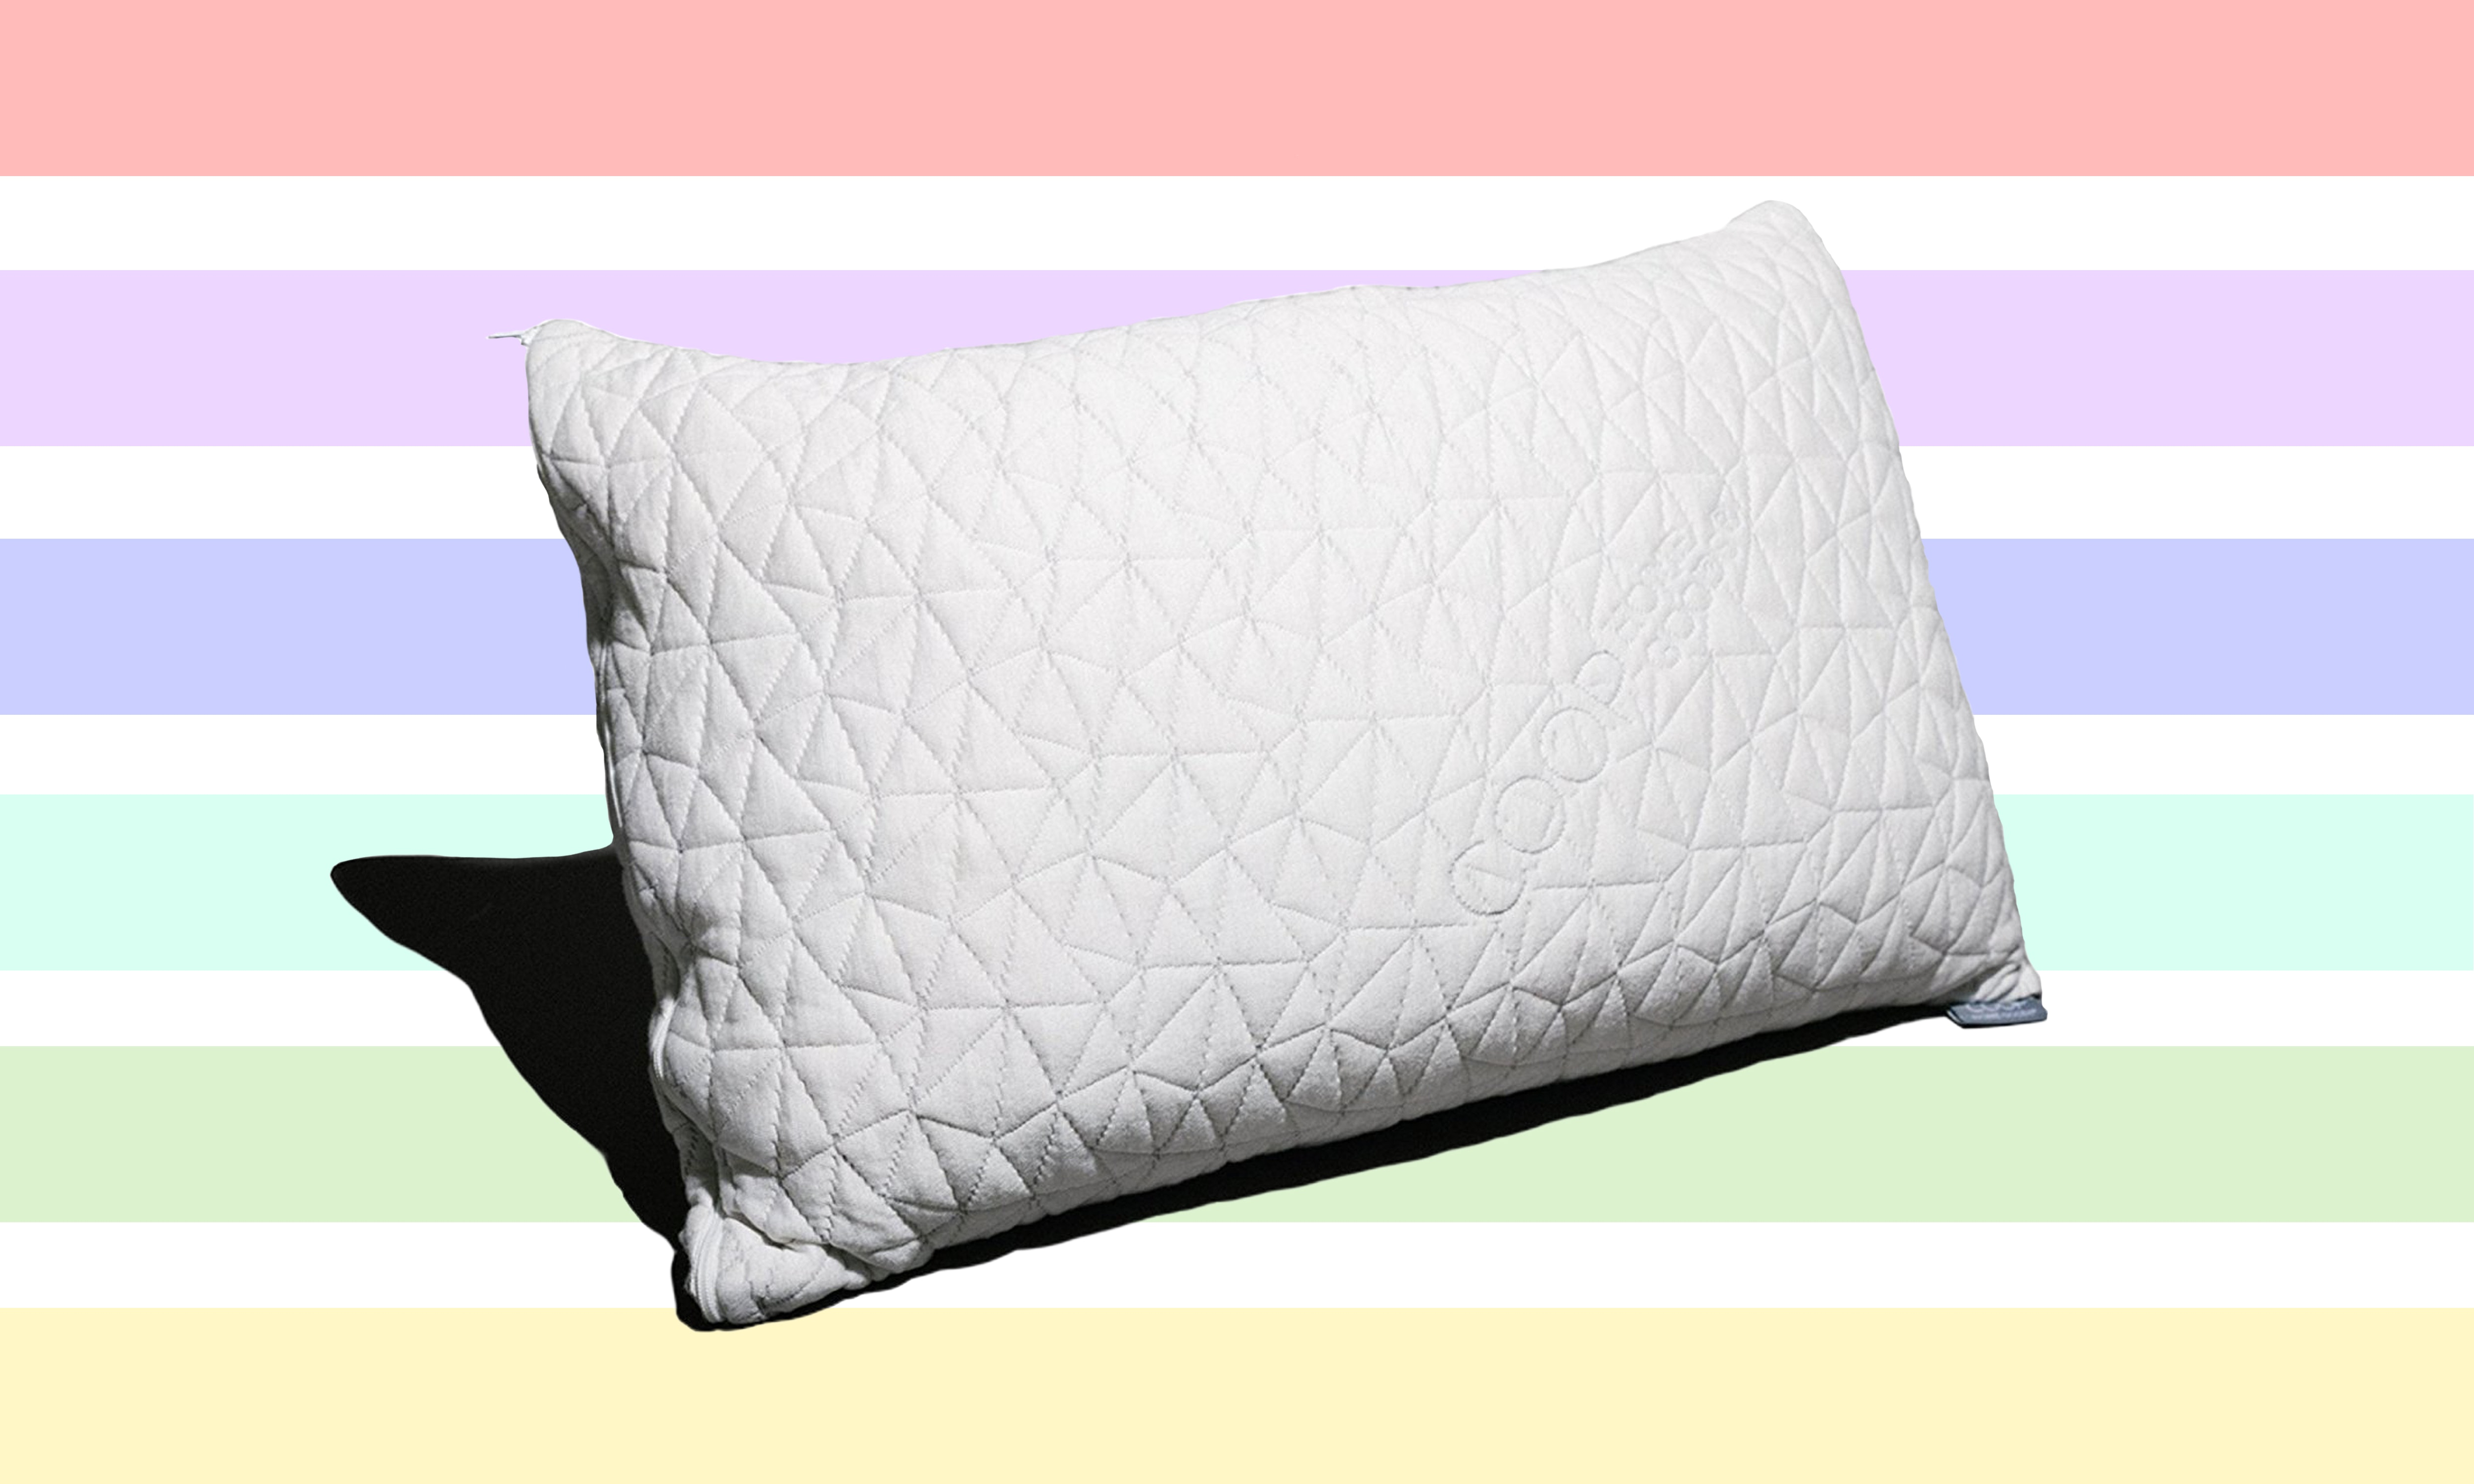 Theres Now a Cushion for Everything, Even Your Brows